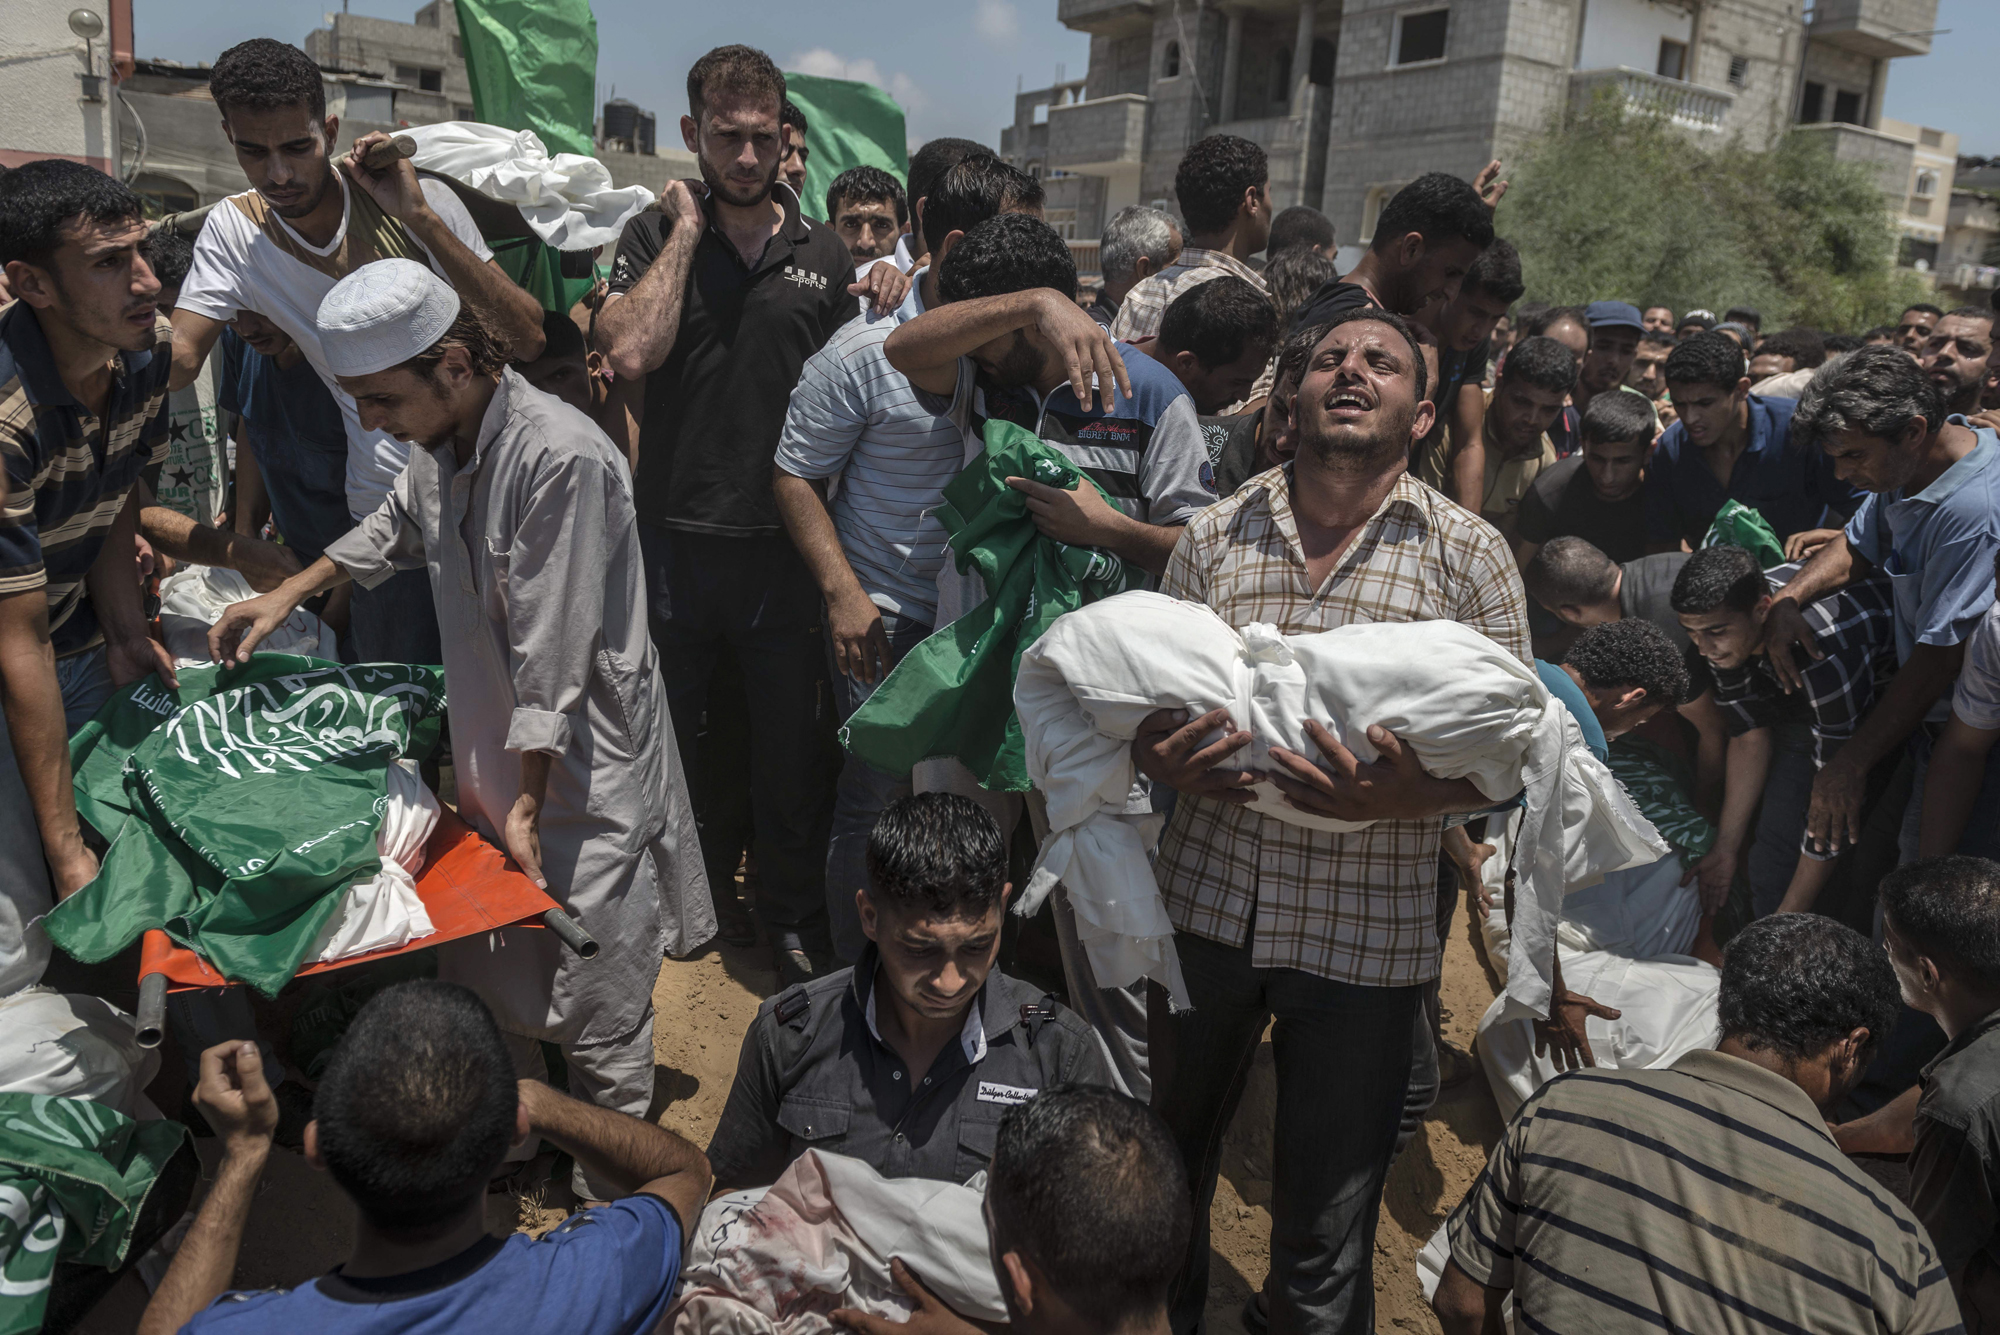 Palestinian men bury the bodies of a family who was killed after airstrike in Khan Younis, in the Gaza Strip, July 21, 2014.